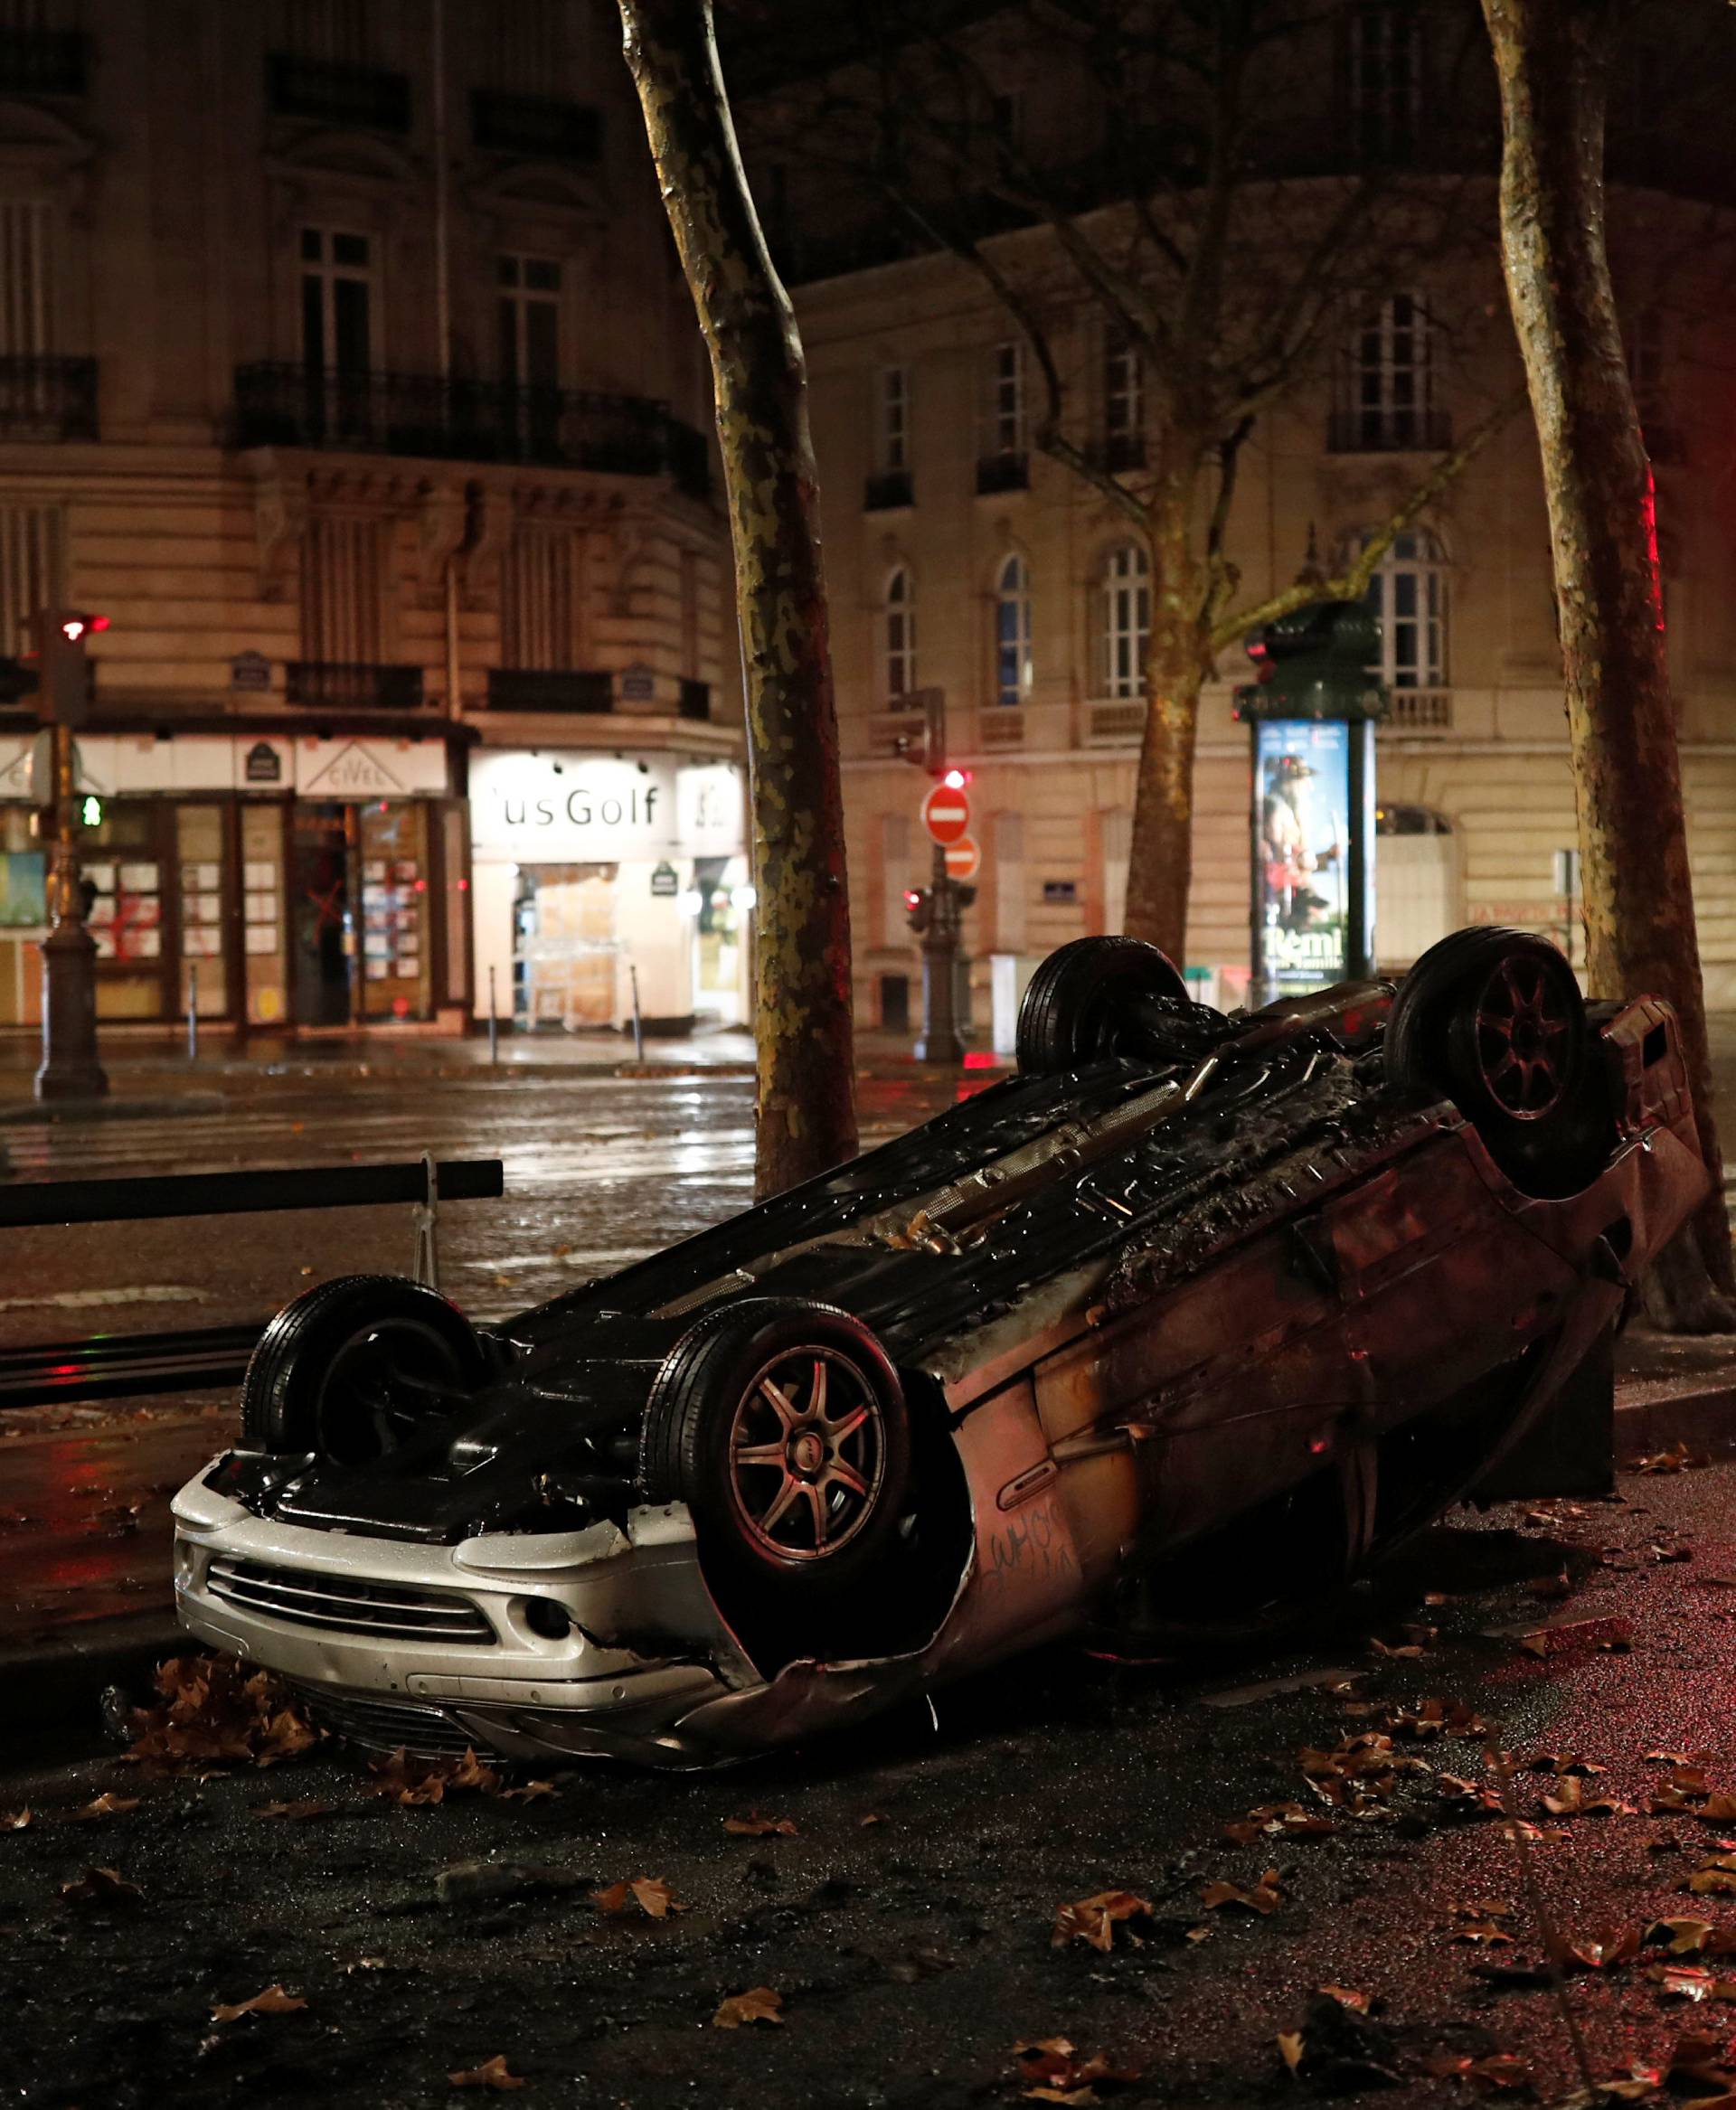 A vandalized car is seen on a street the morning after clashes with protesters wearing yellow vests, a symbol of a French drivers' protest against higher diesel taxes, in Paris